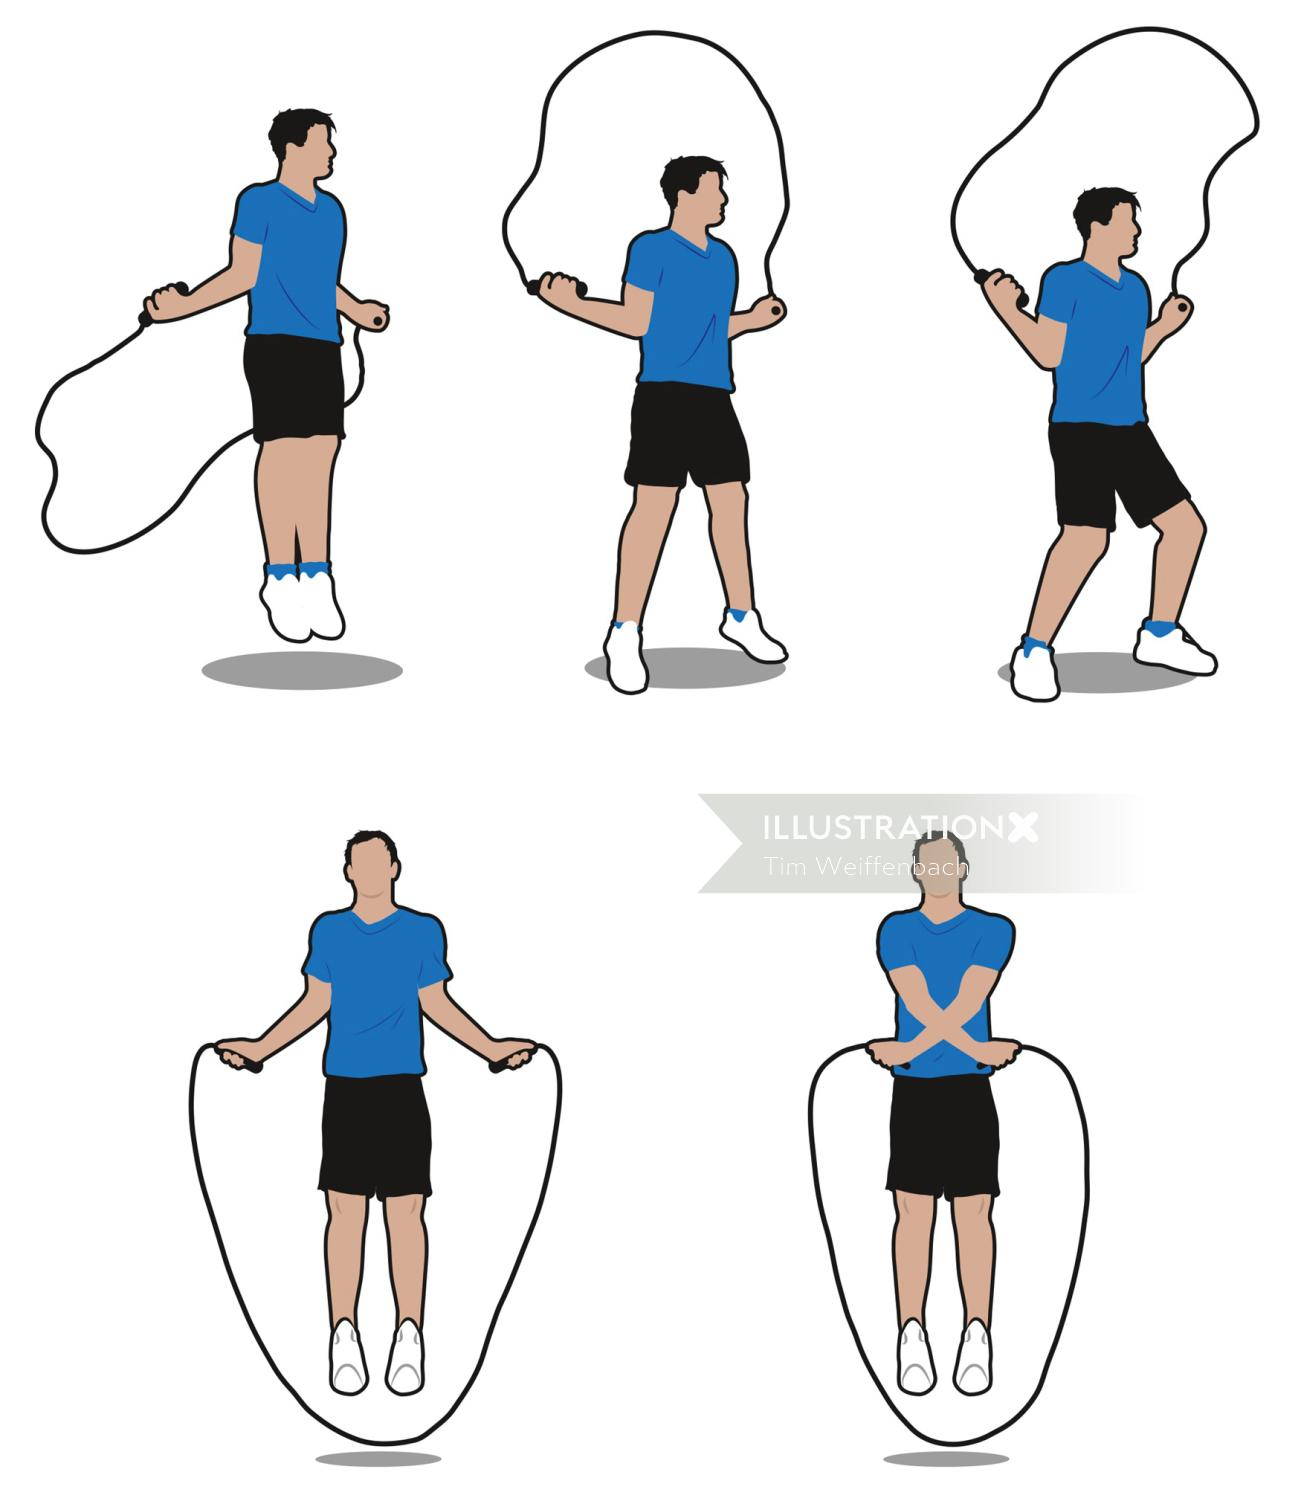 Skipping rope exercise - An illustration by Tim Weiffenbach